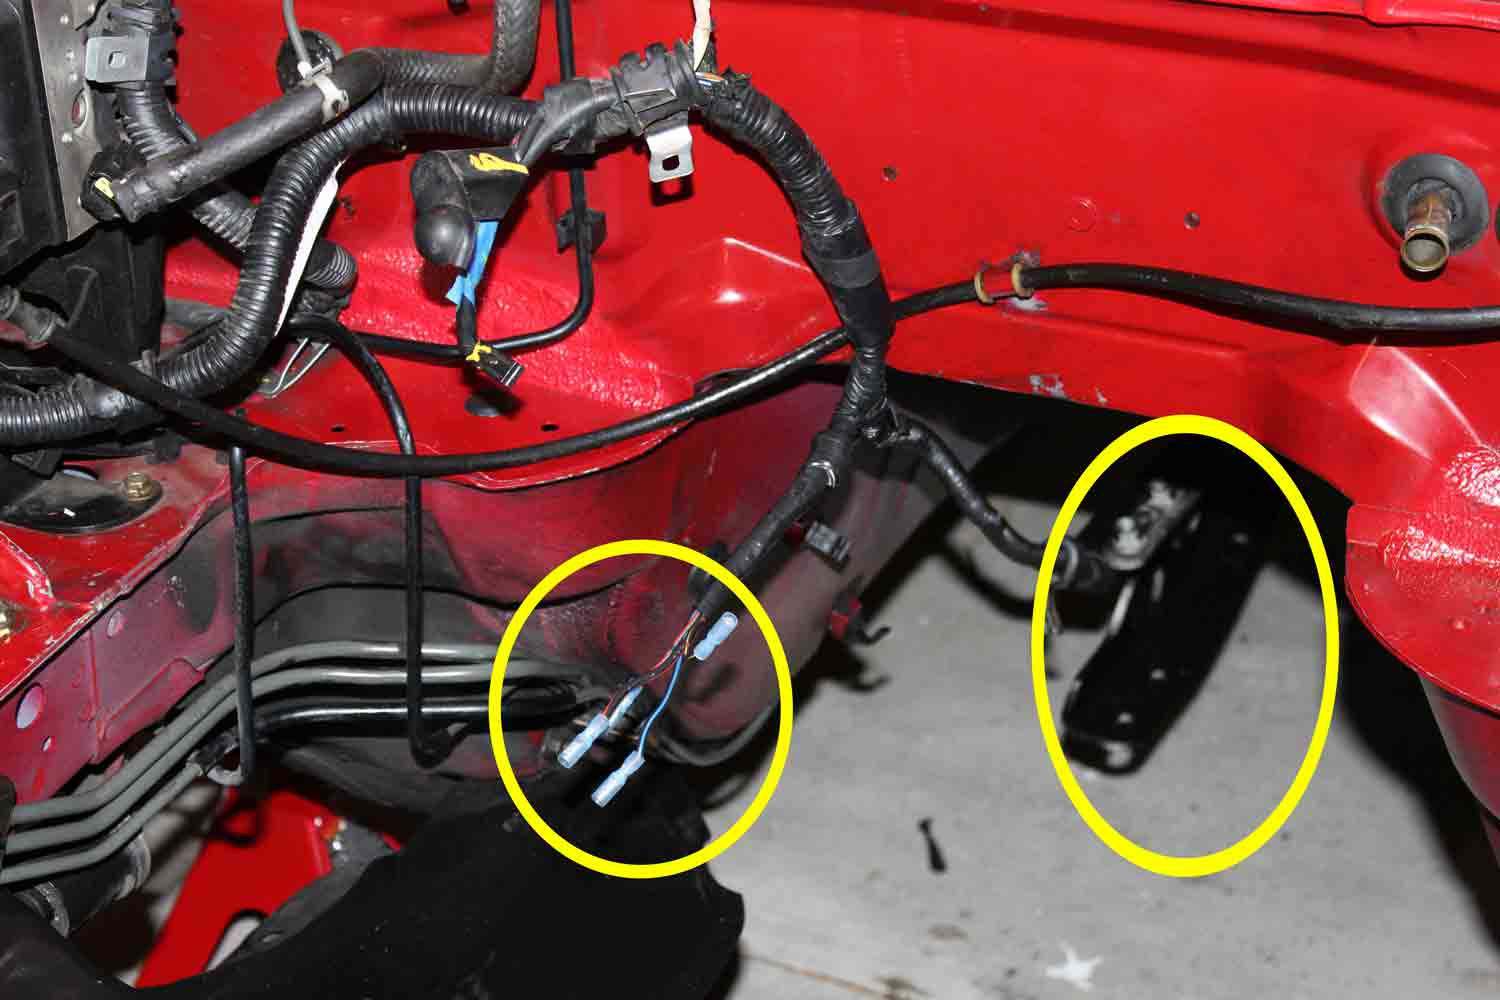 Miata Community Wiki Automatic To Manual Conversion Wiring Harness Ends Four Wires Isolated And Wire Rewrapped You Can Make Out The End Of Ppf In Image